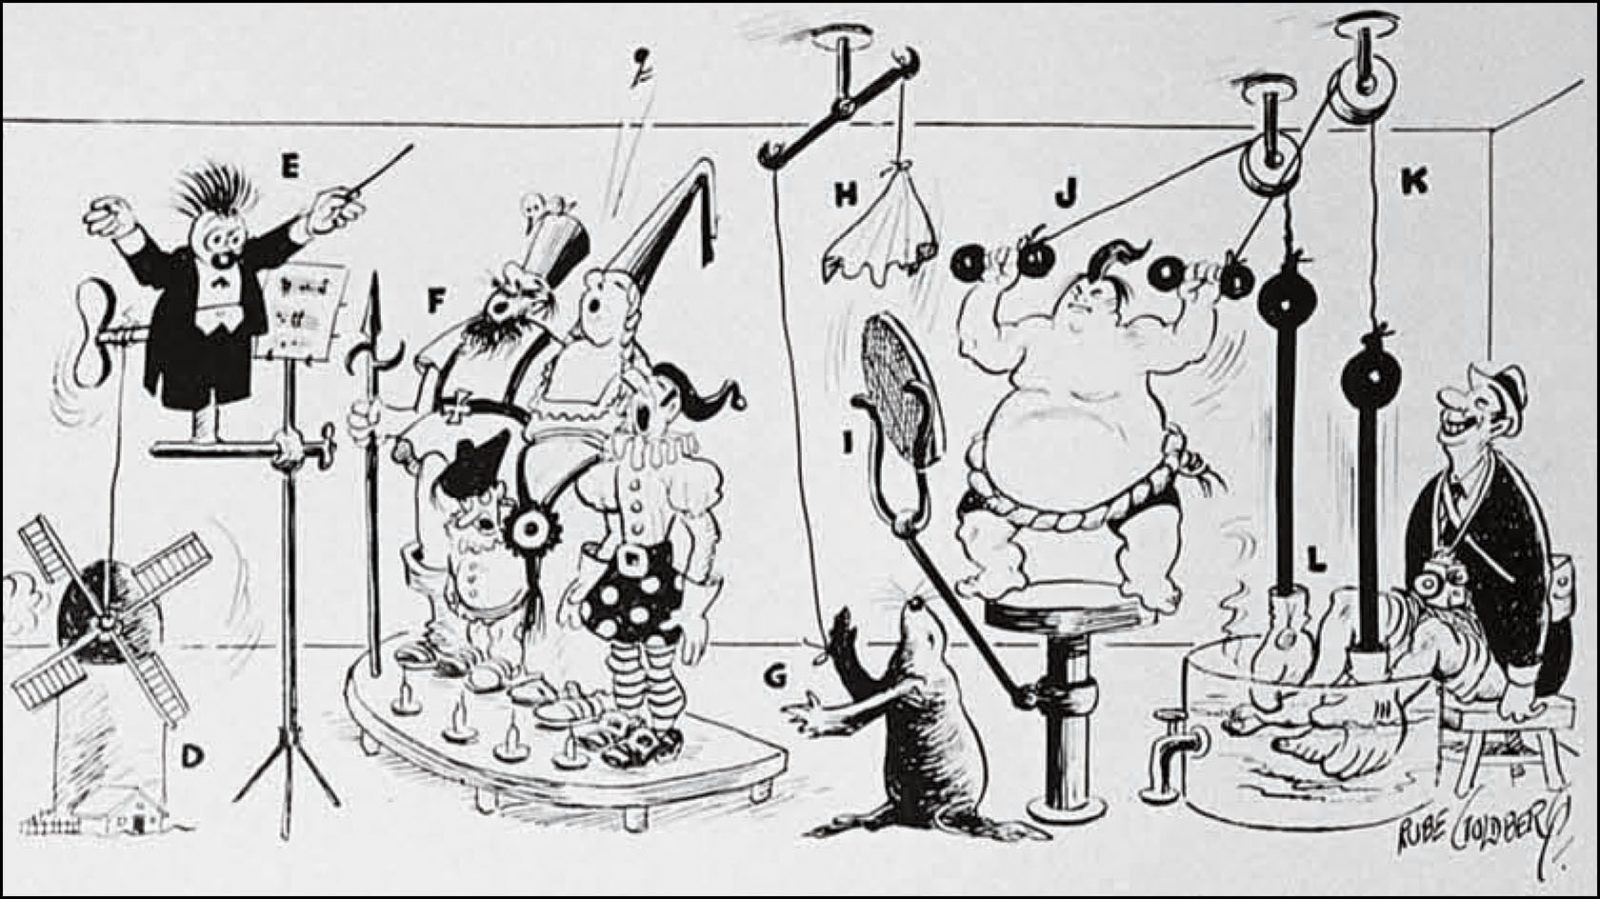 Rube goldberg black and white clipart graphic freeuse library The Rube Goldberg Hackathon – Rube Goldberg graphic freeuse library